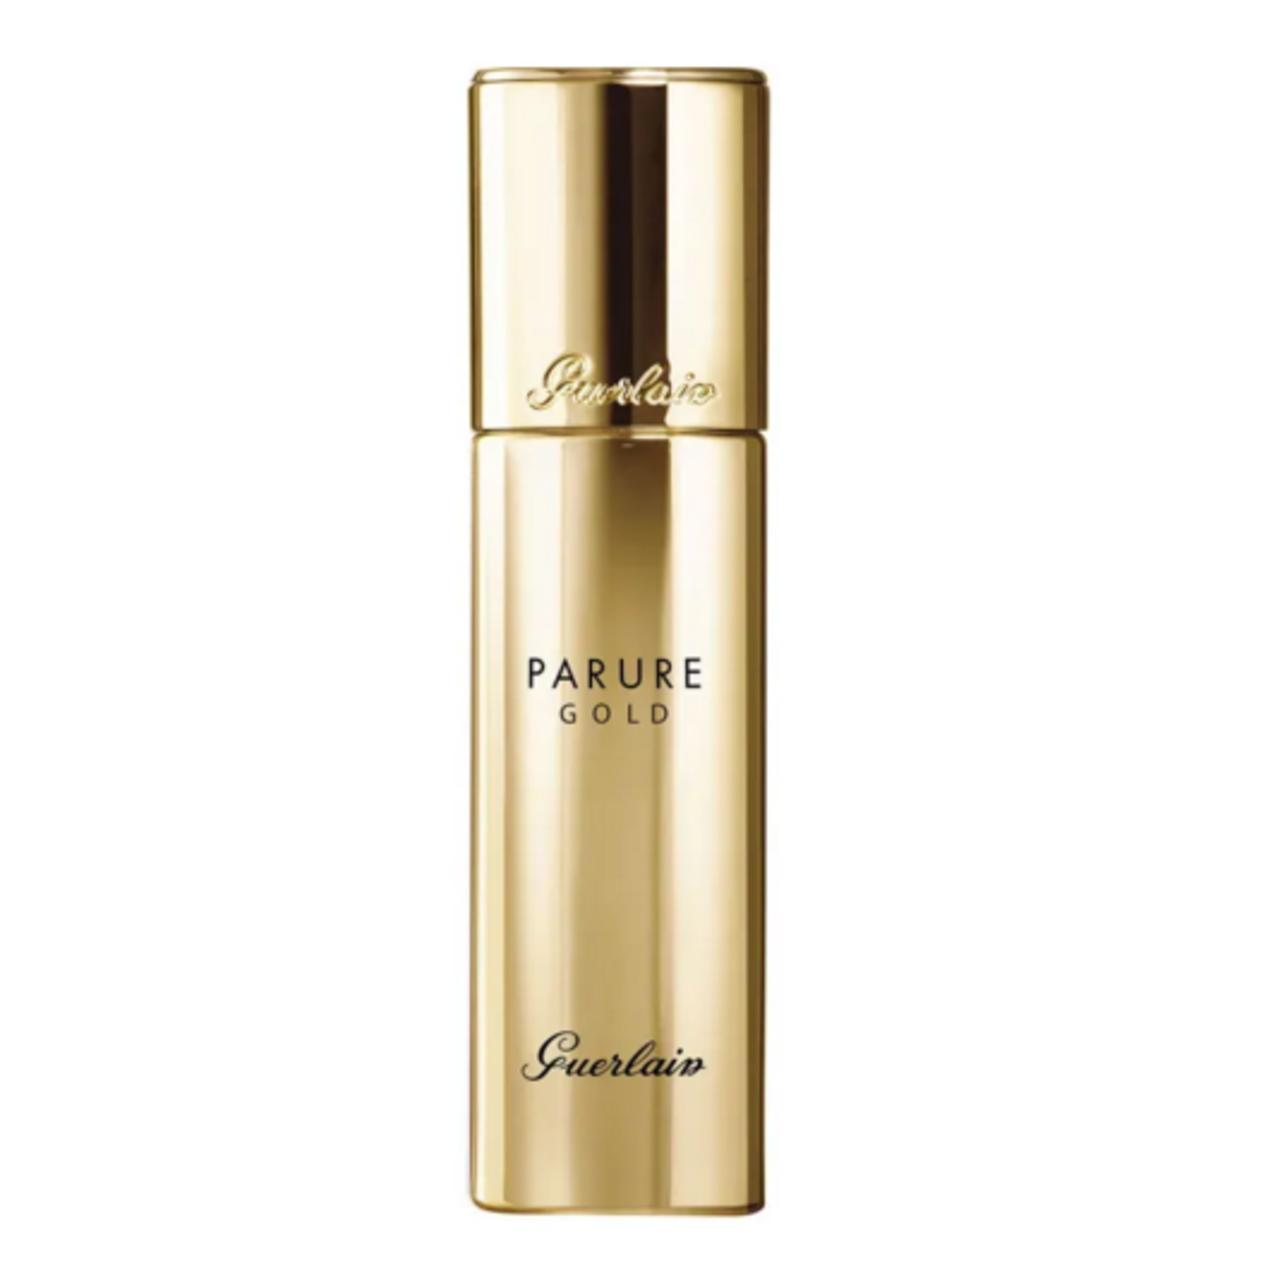 Guerlain Parure Gold Radiance Foundation SPF 30.